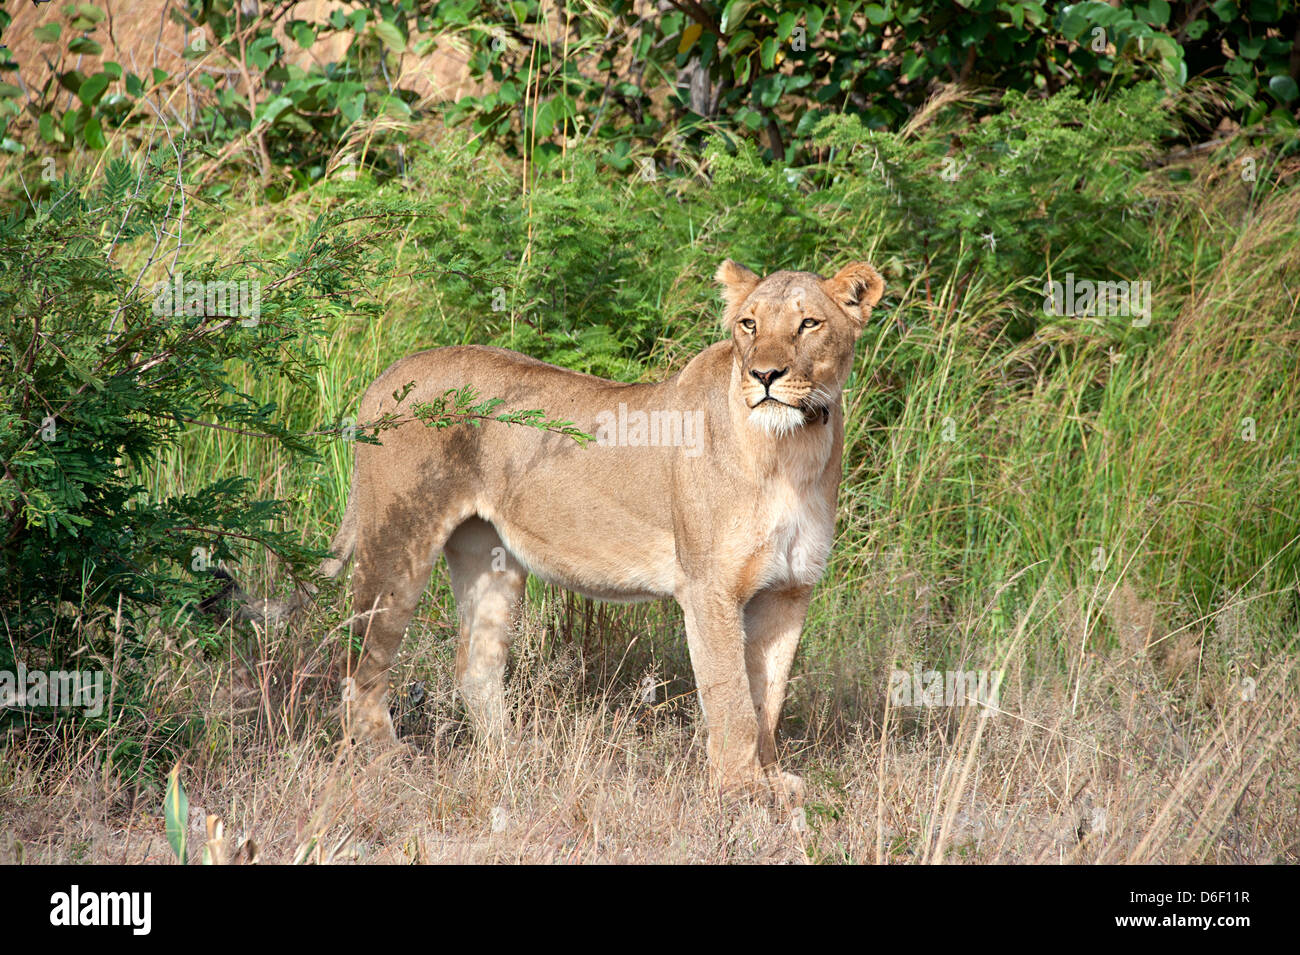 African lion surveys the Savannah in Antelope Park, Zimbabwe. - Stock Image